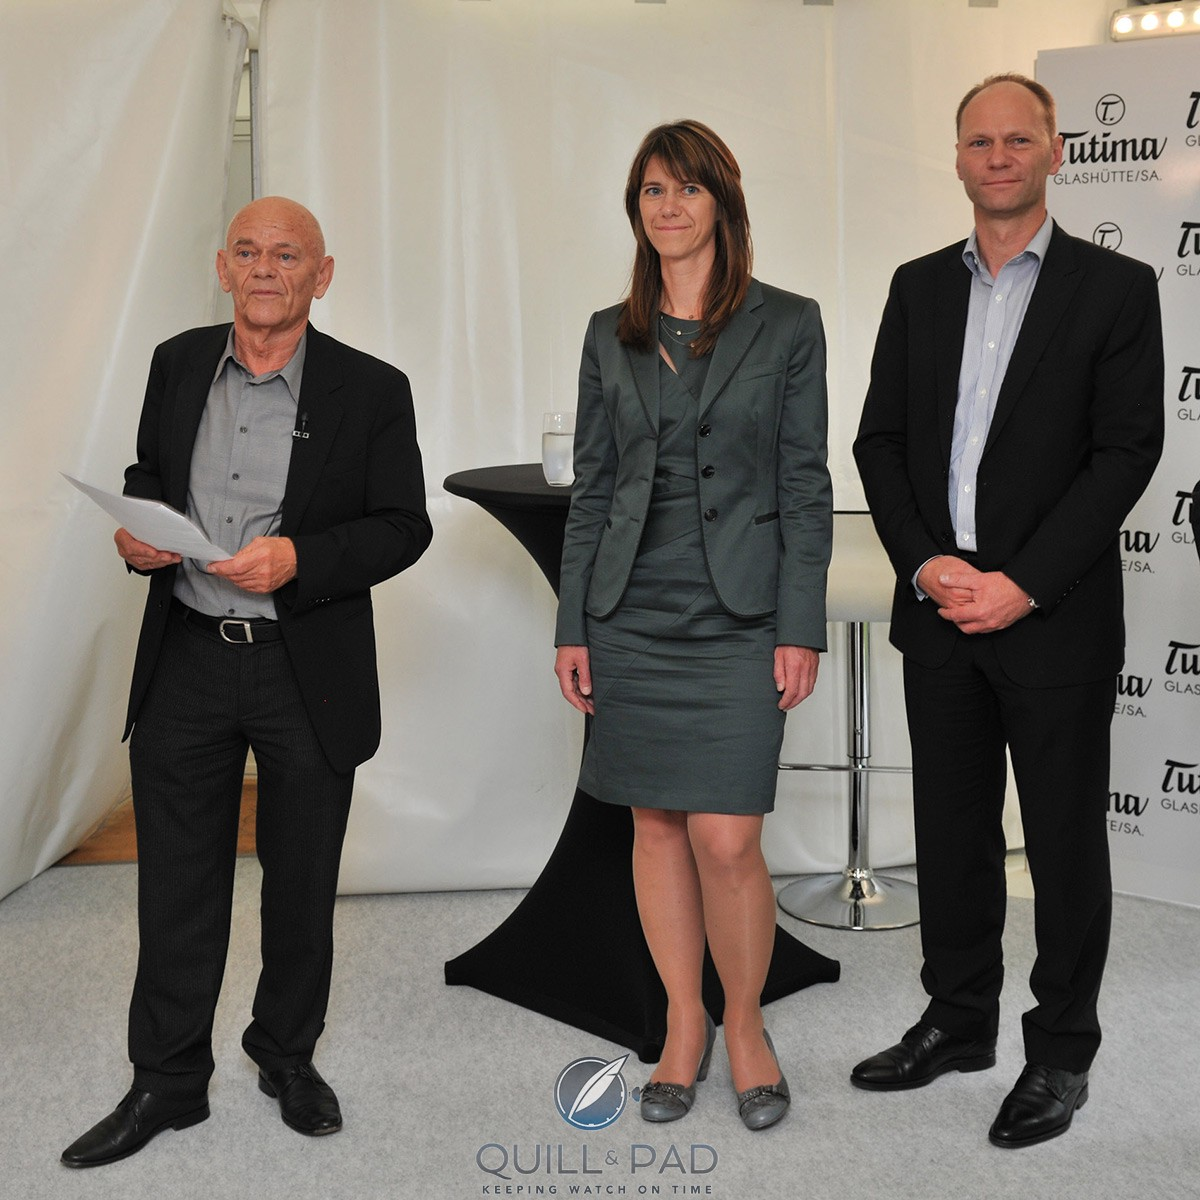 Delecate family left to right: Dieter Delecate, Ute Delecate, and Jörg Delecate at the Glashütte factory opening in 2011